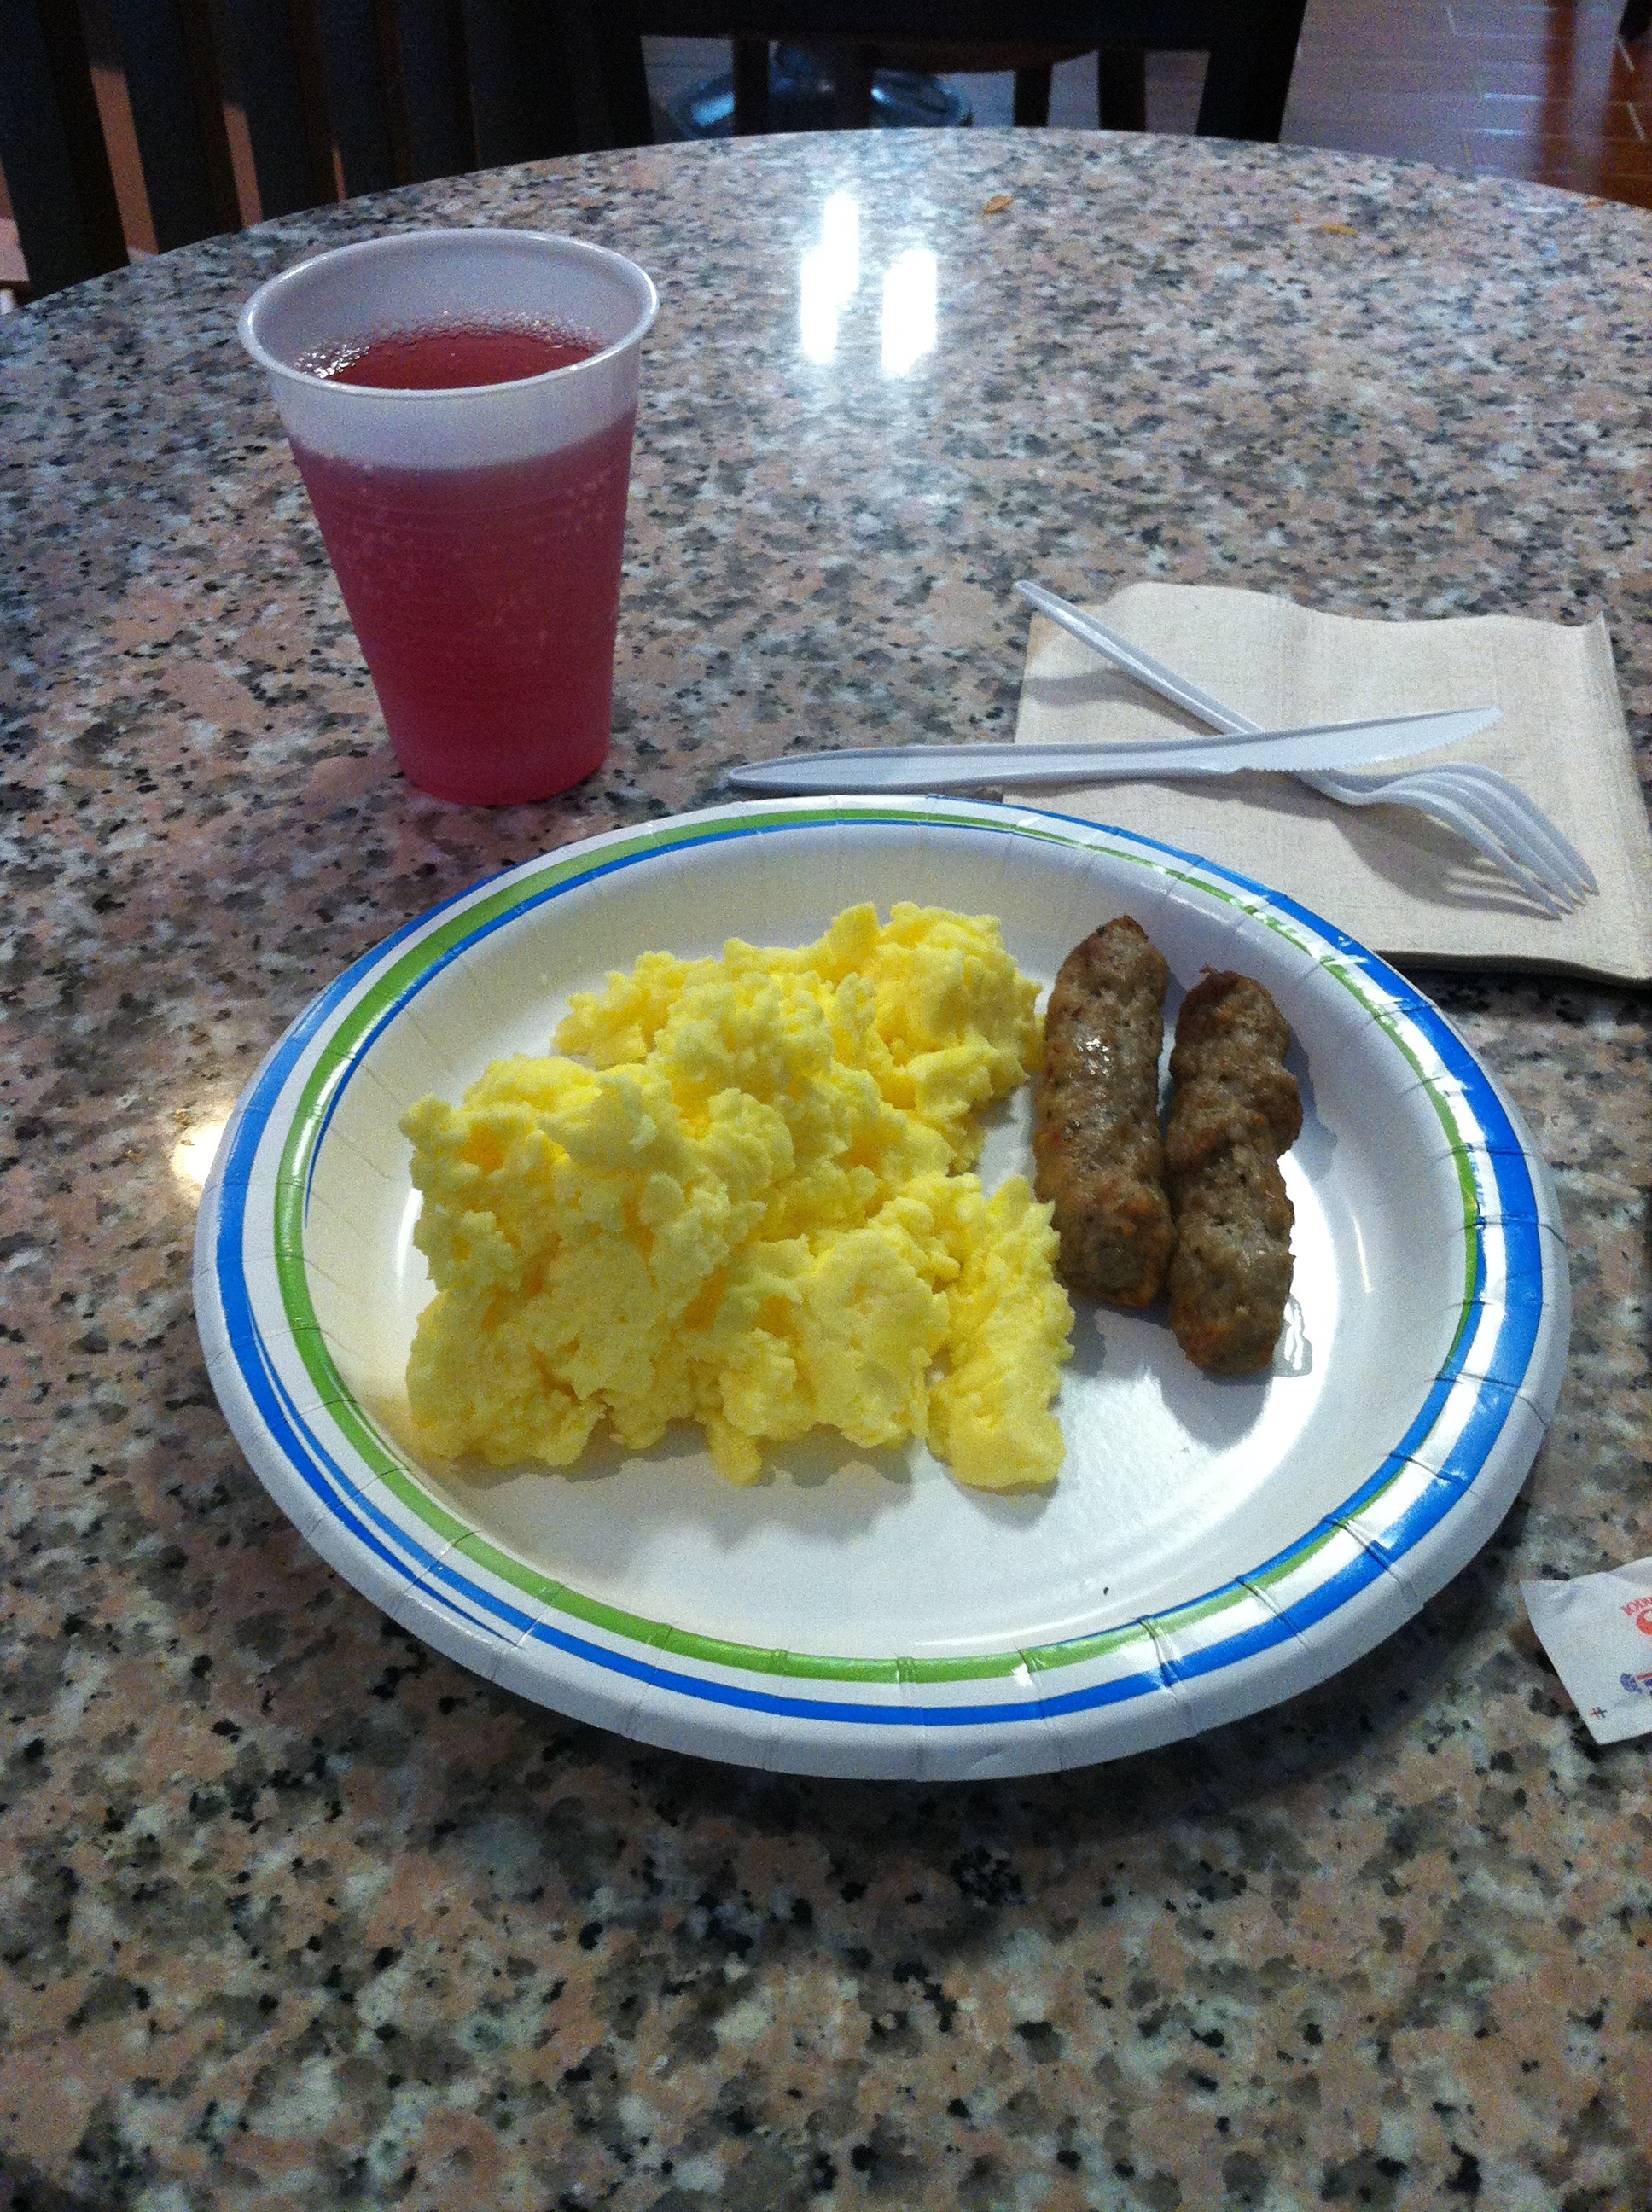 The C Rations breakfast at the Best Western.